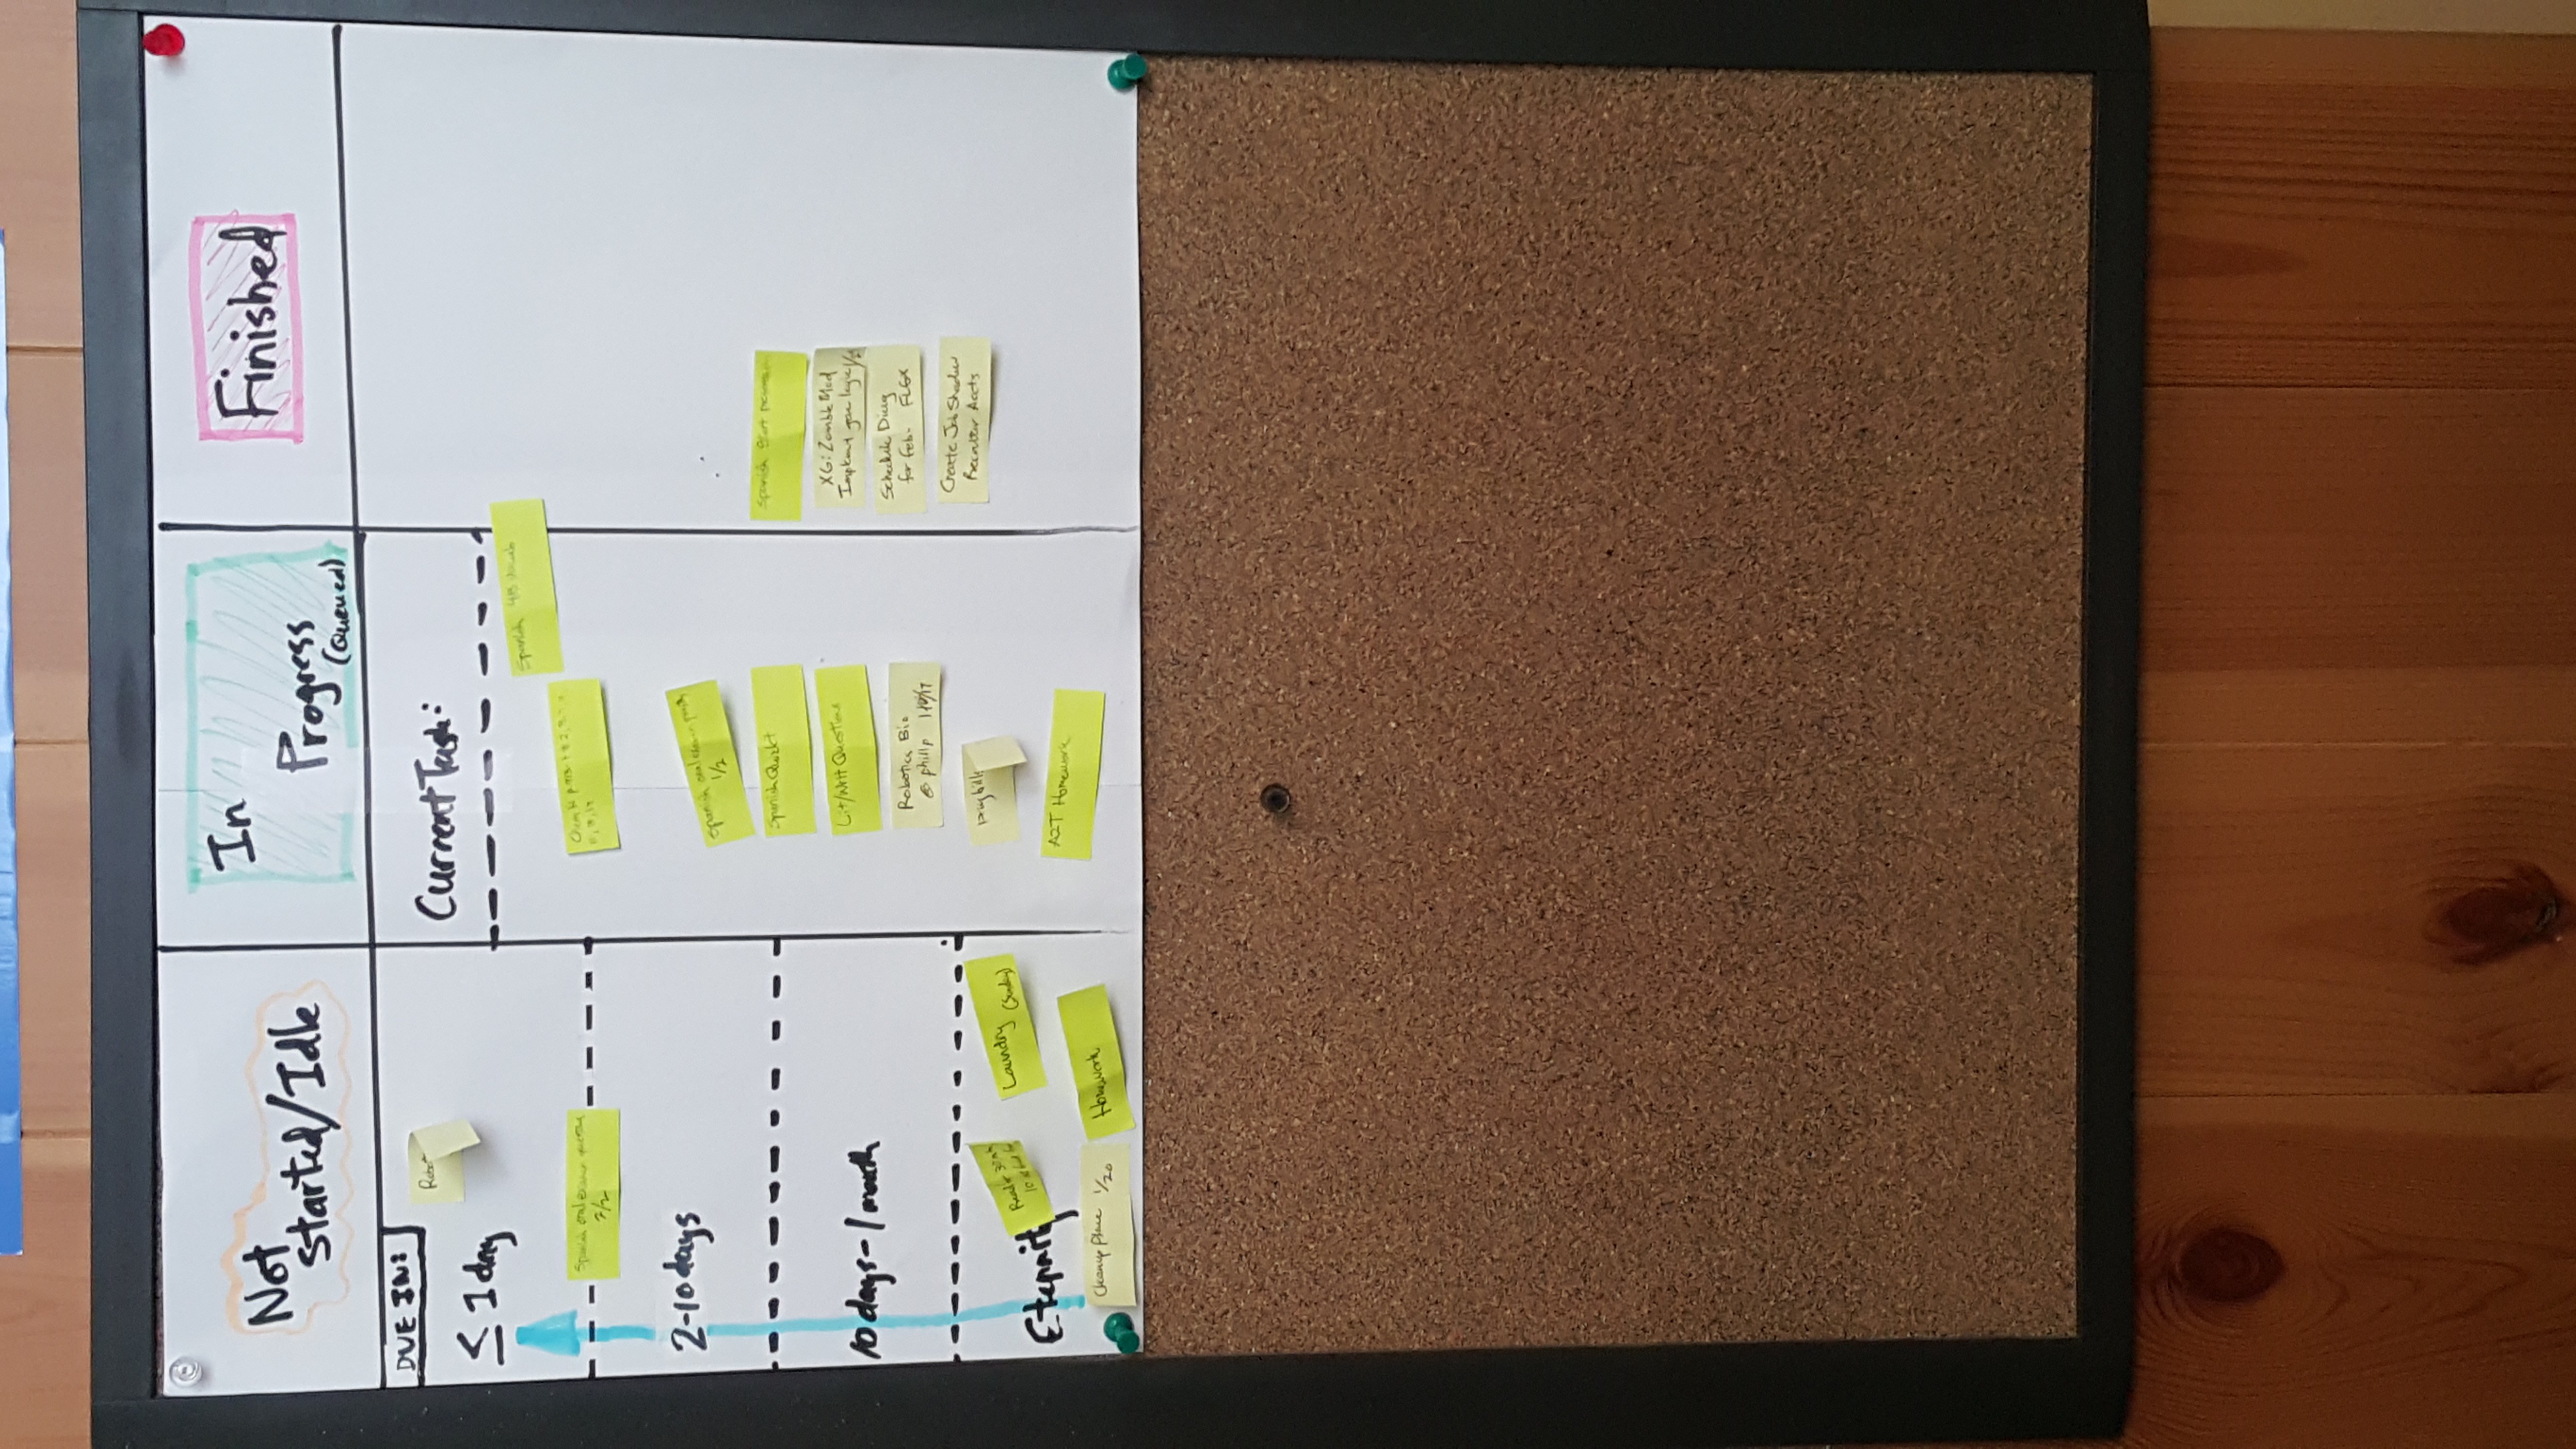 Using paper, post-its, and a cork board, you can  create a tactile way to manage all the things you need to do! Just draw out a layout on paper  and attach it to the board.